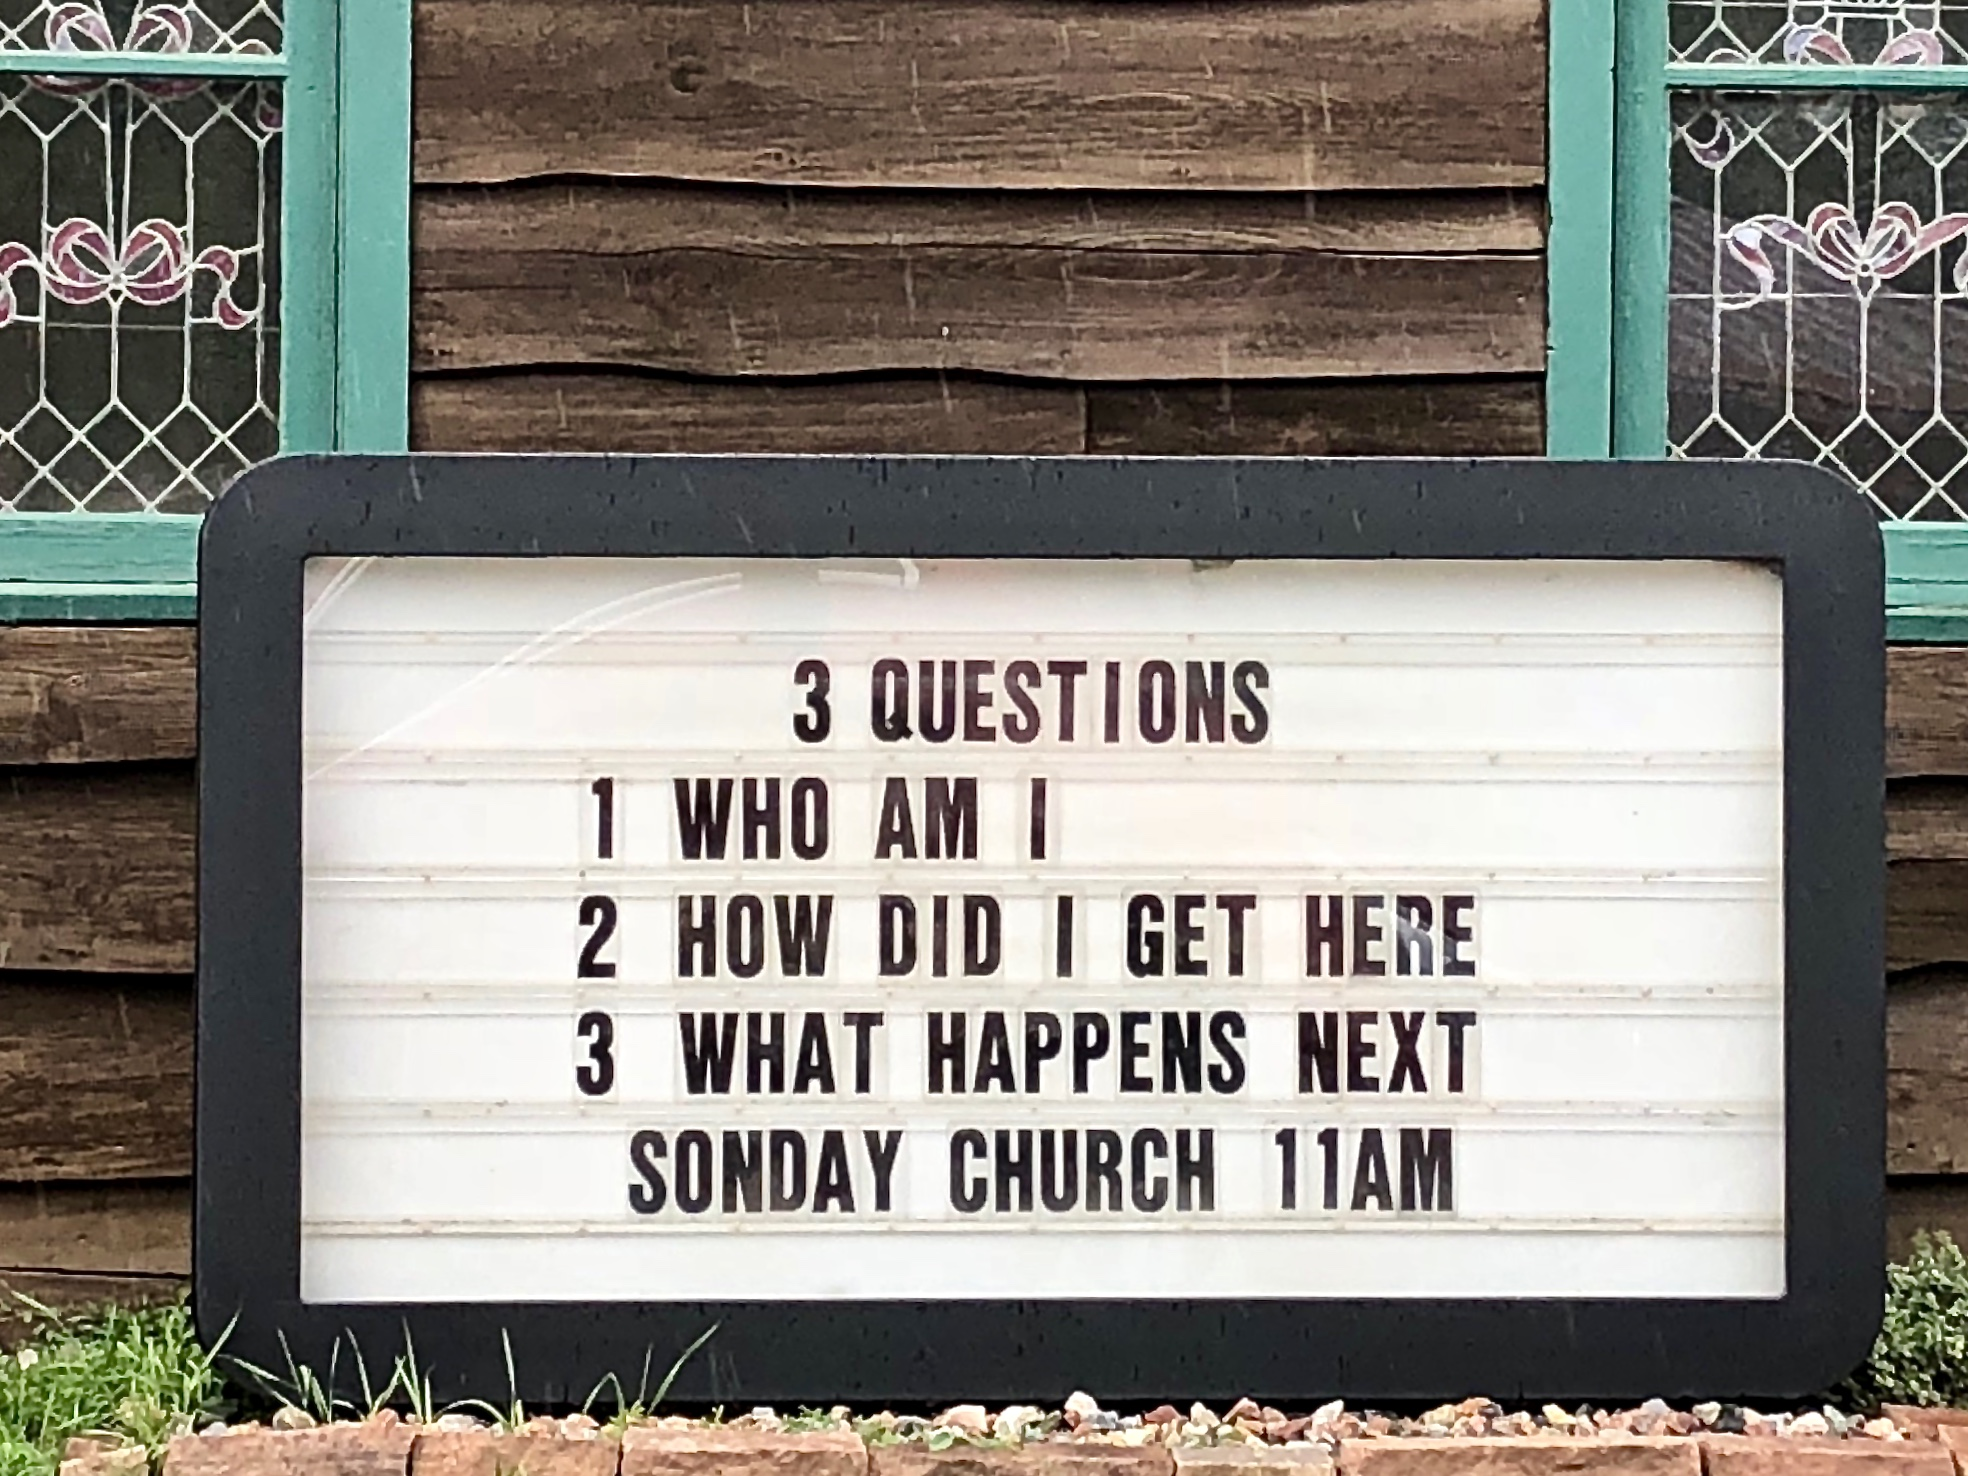 A trip into the Colorado Mountains brought us this church wisdom in Jamestown. 3 purposeful questions to take to heart.